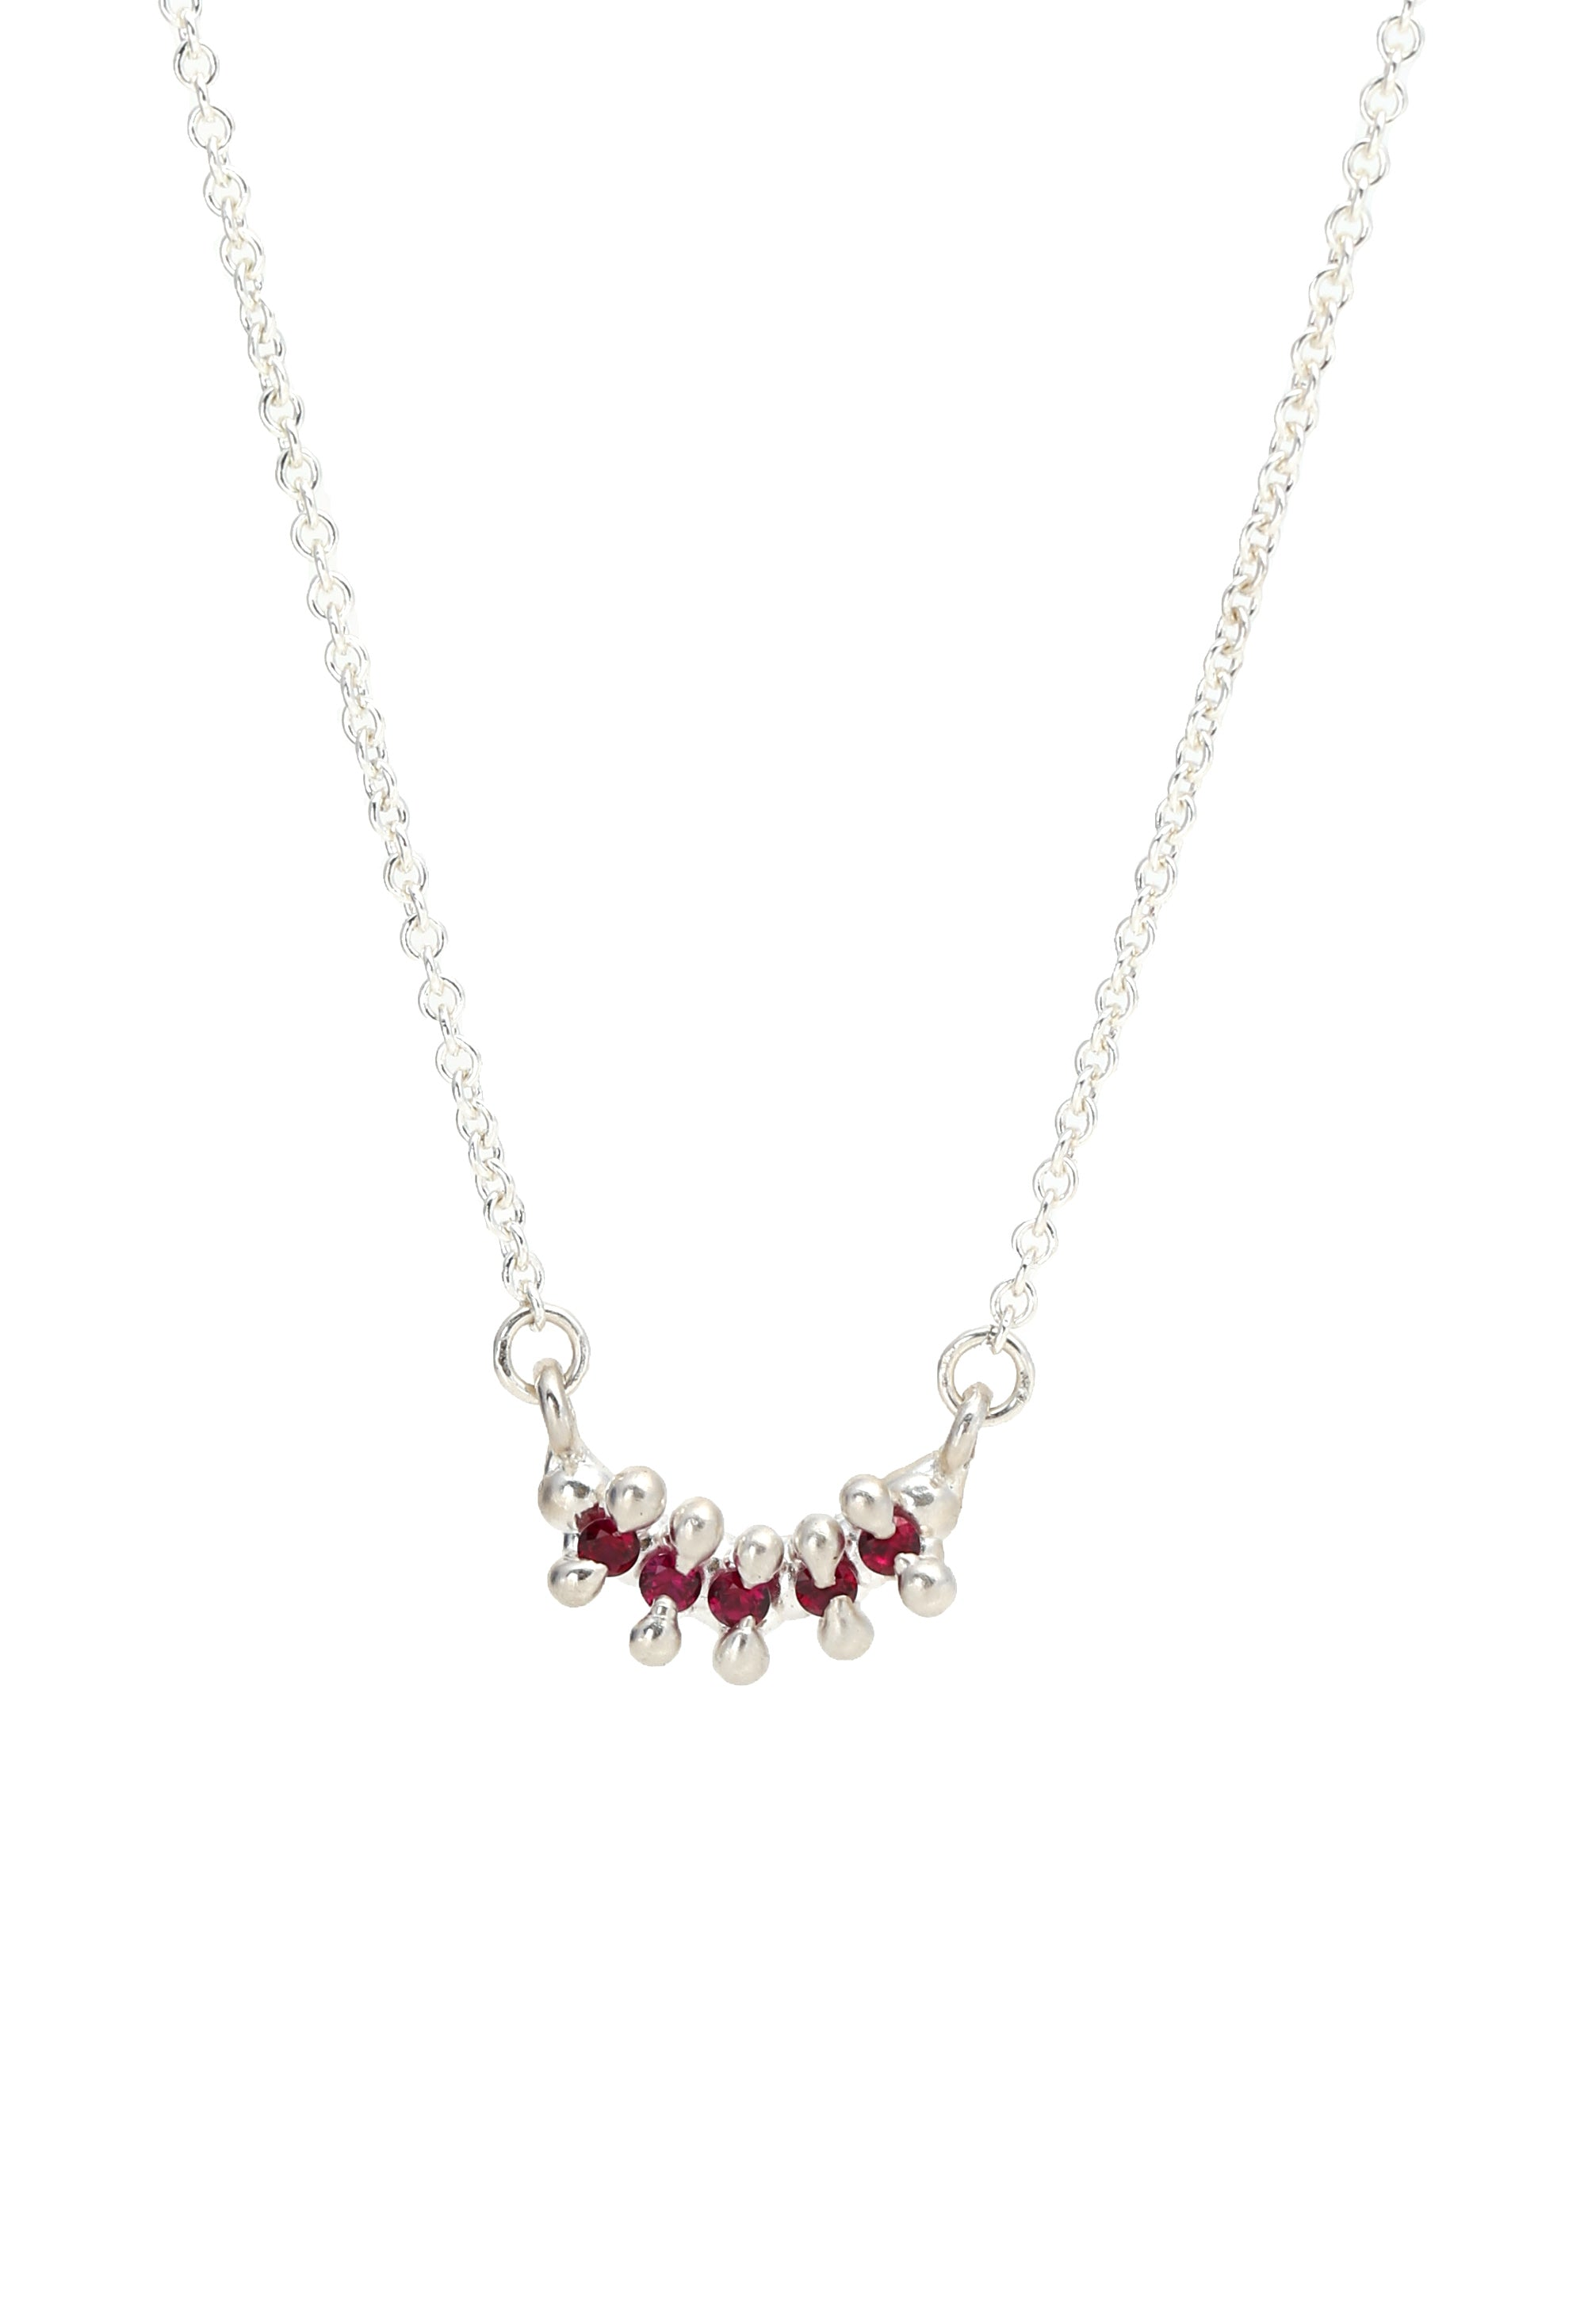 5 Stone Bar Necklace Garnet